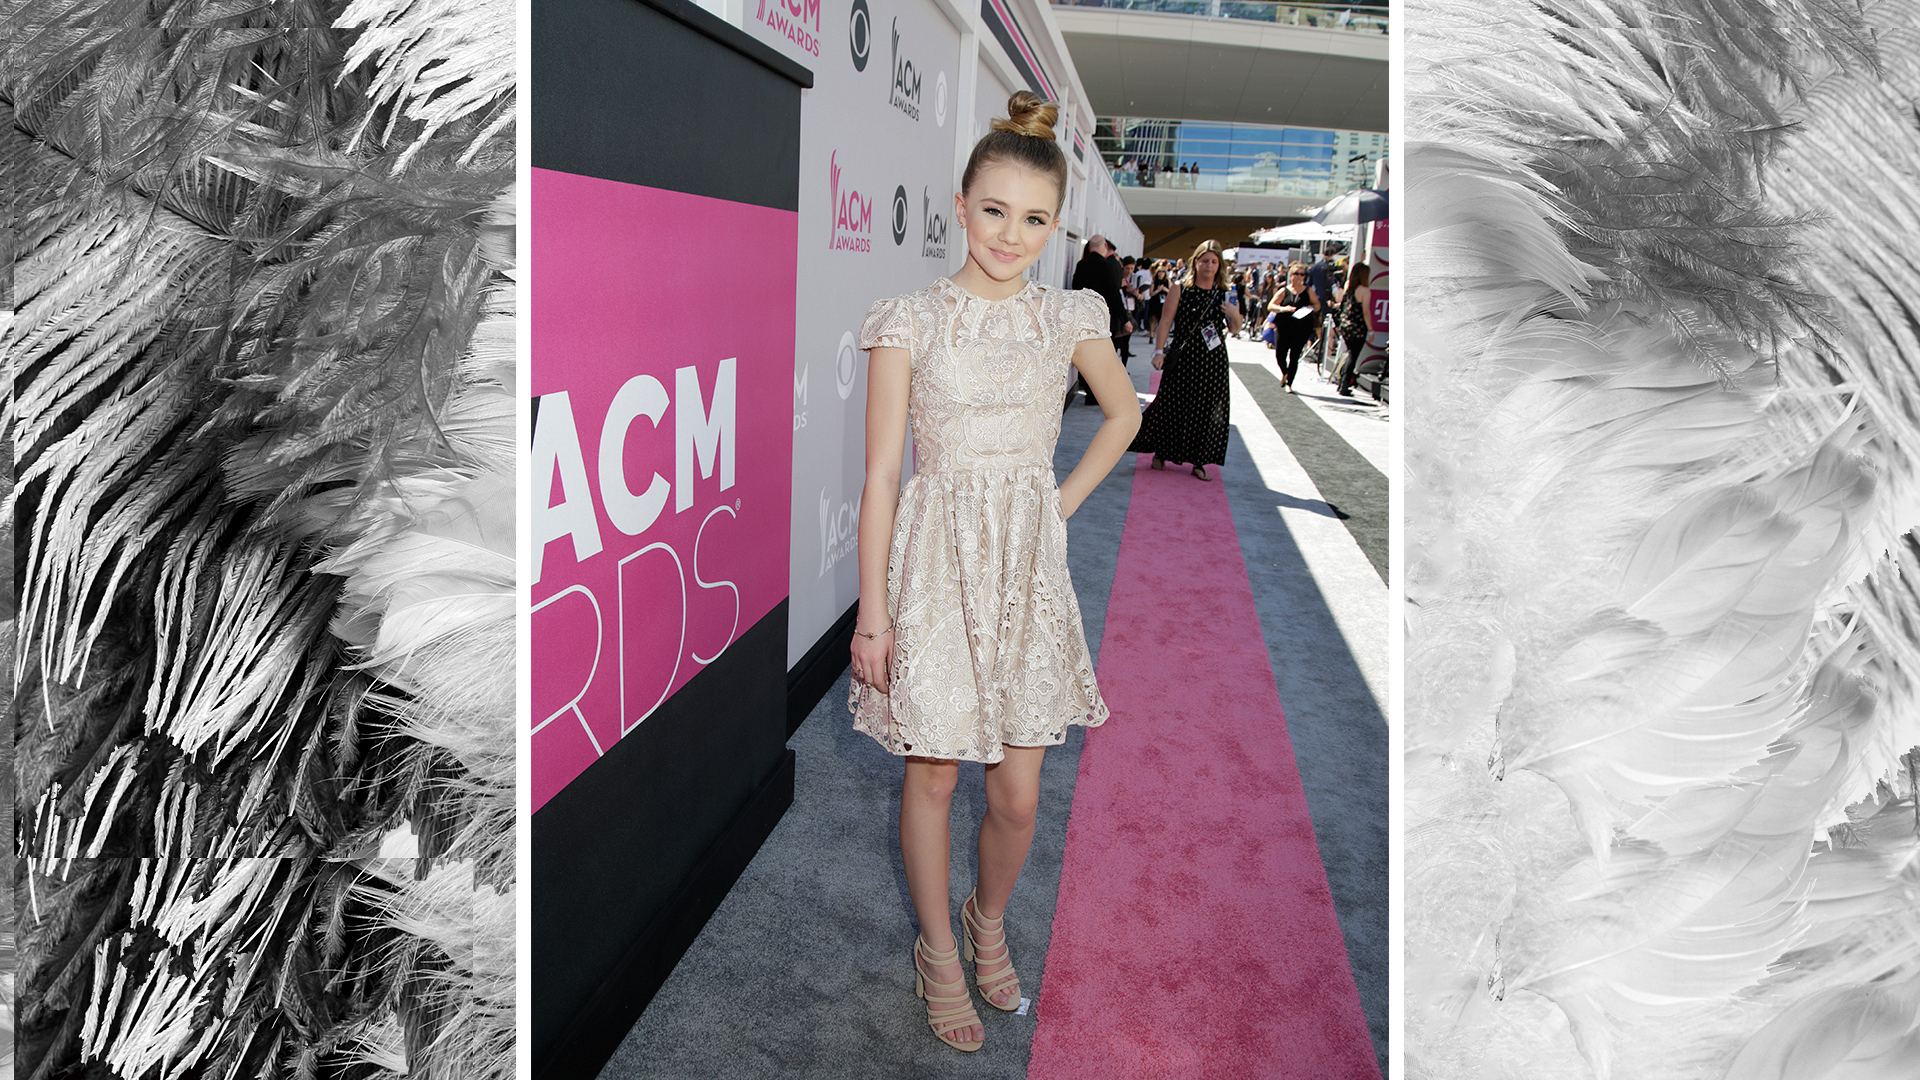 Tegan Marie is adorable in a top knot and frilly lace knee-length dress.